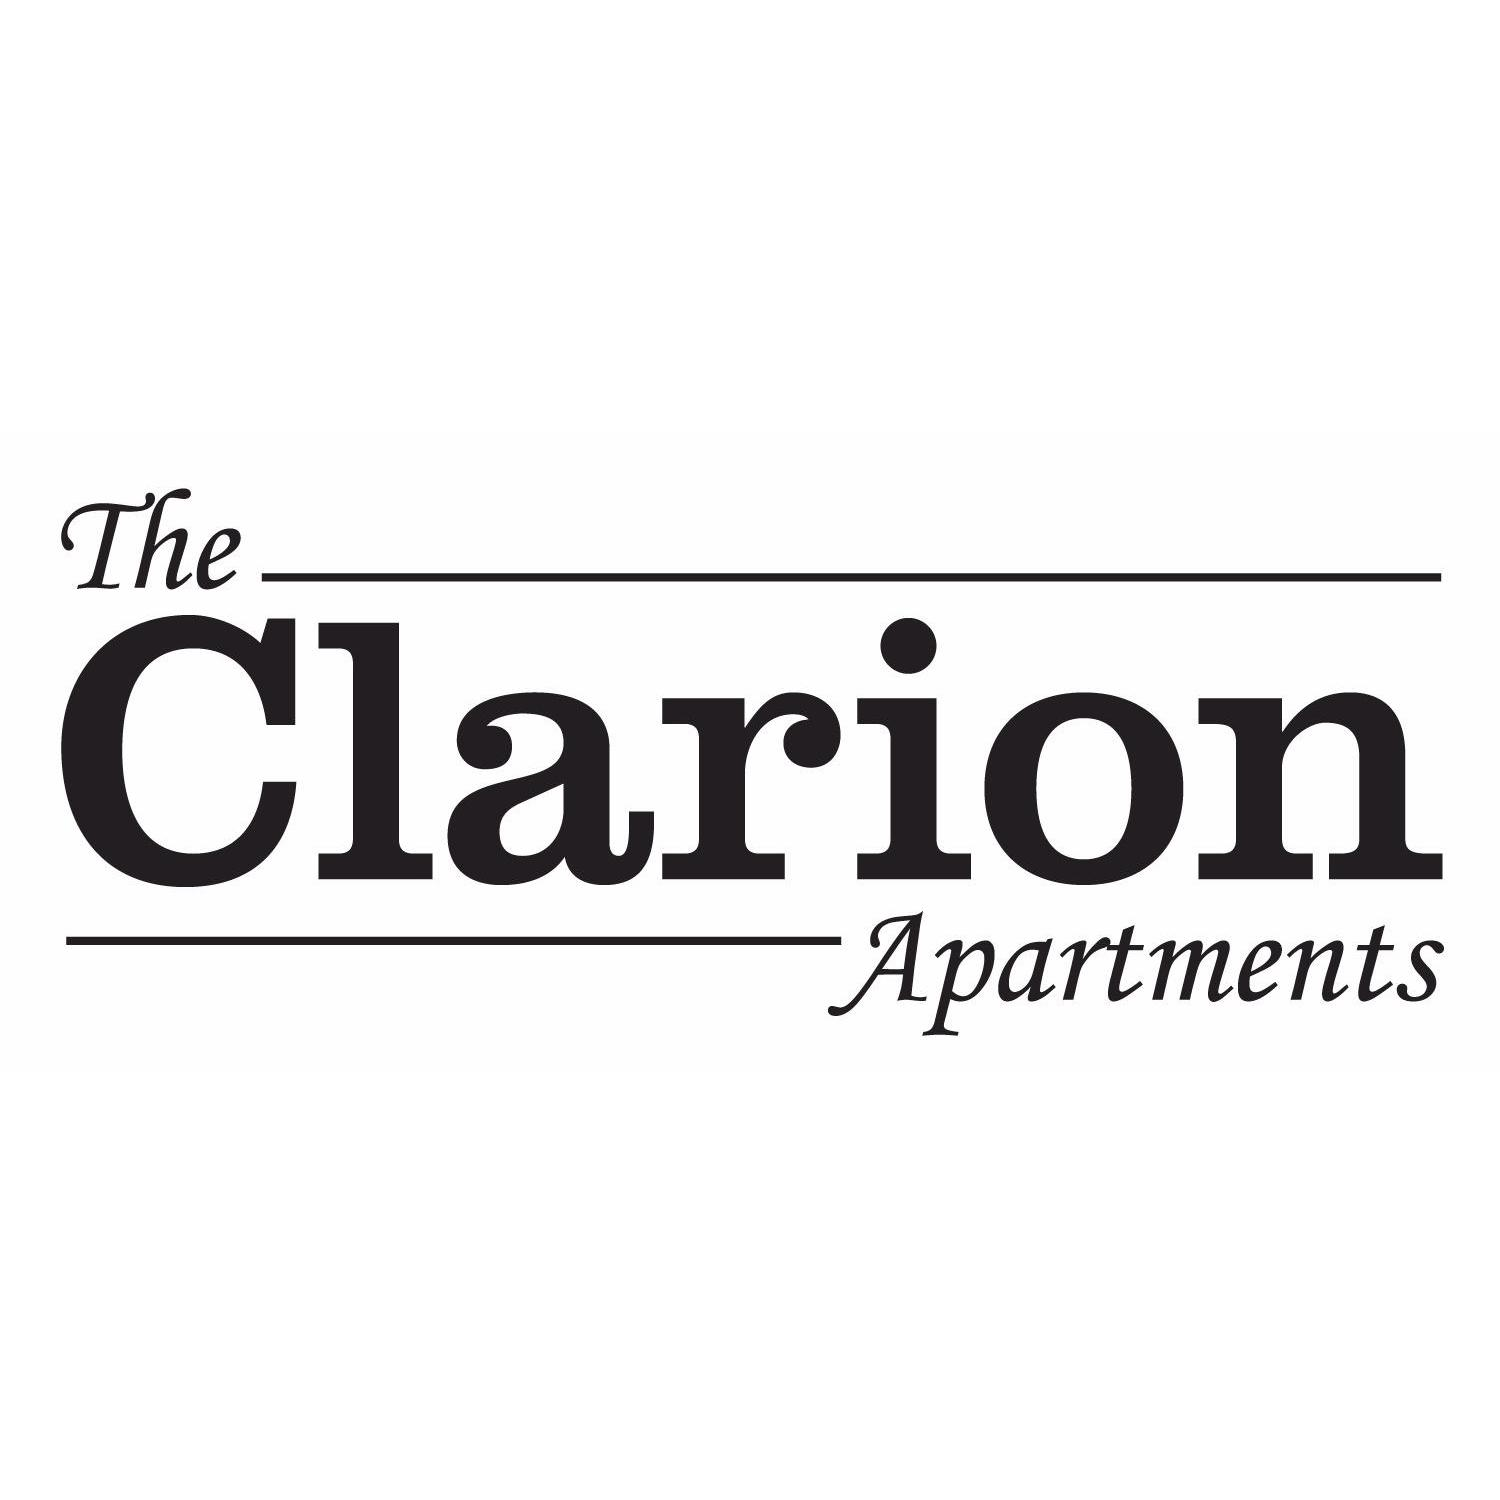 The Clarion Apartments